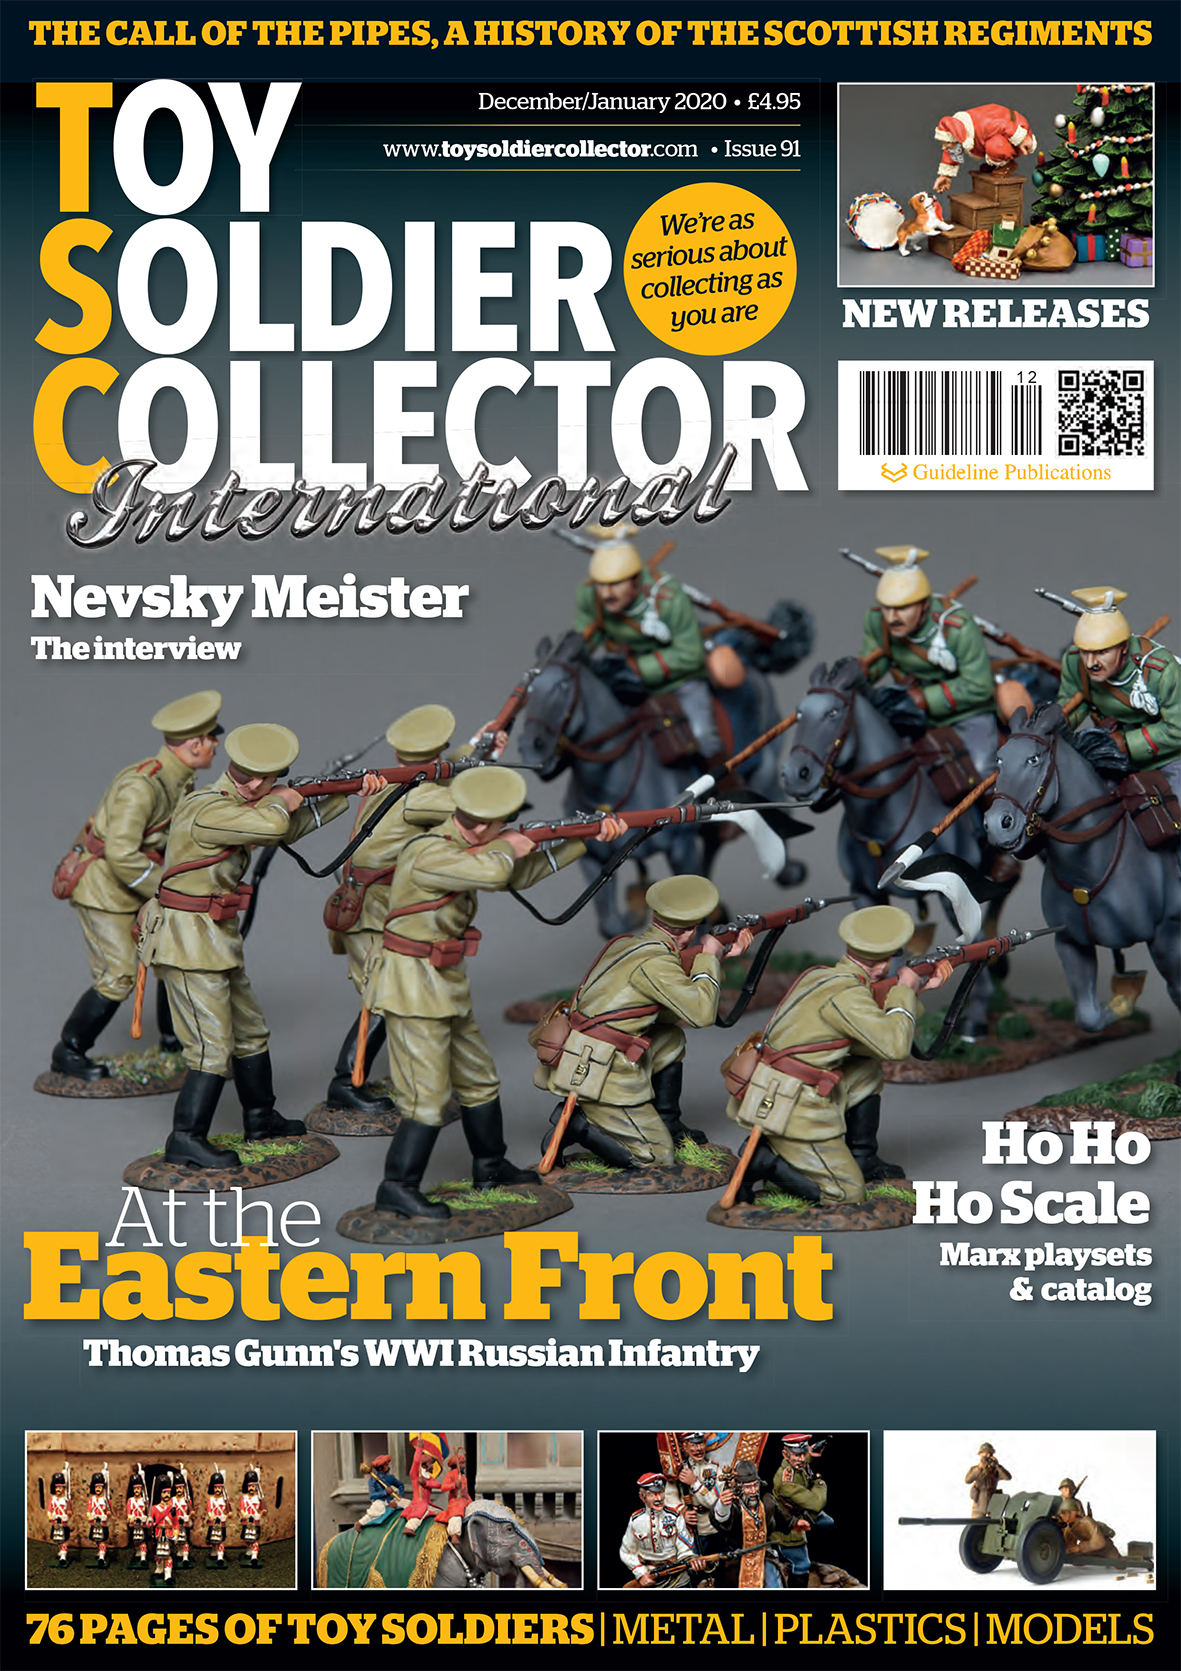 Guideline Publications Toy Soldier Collector #91 Dec/Jan Issue 91